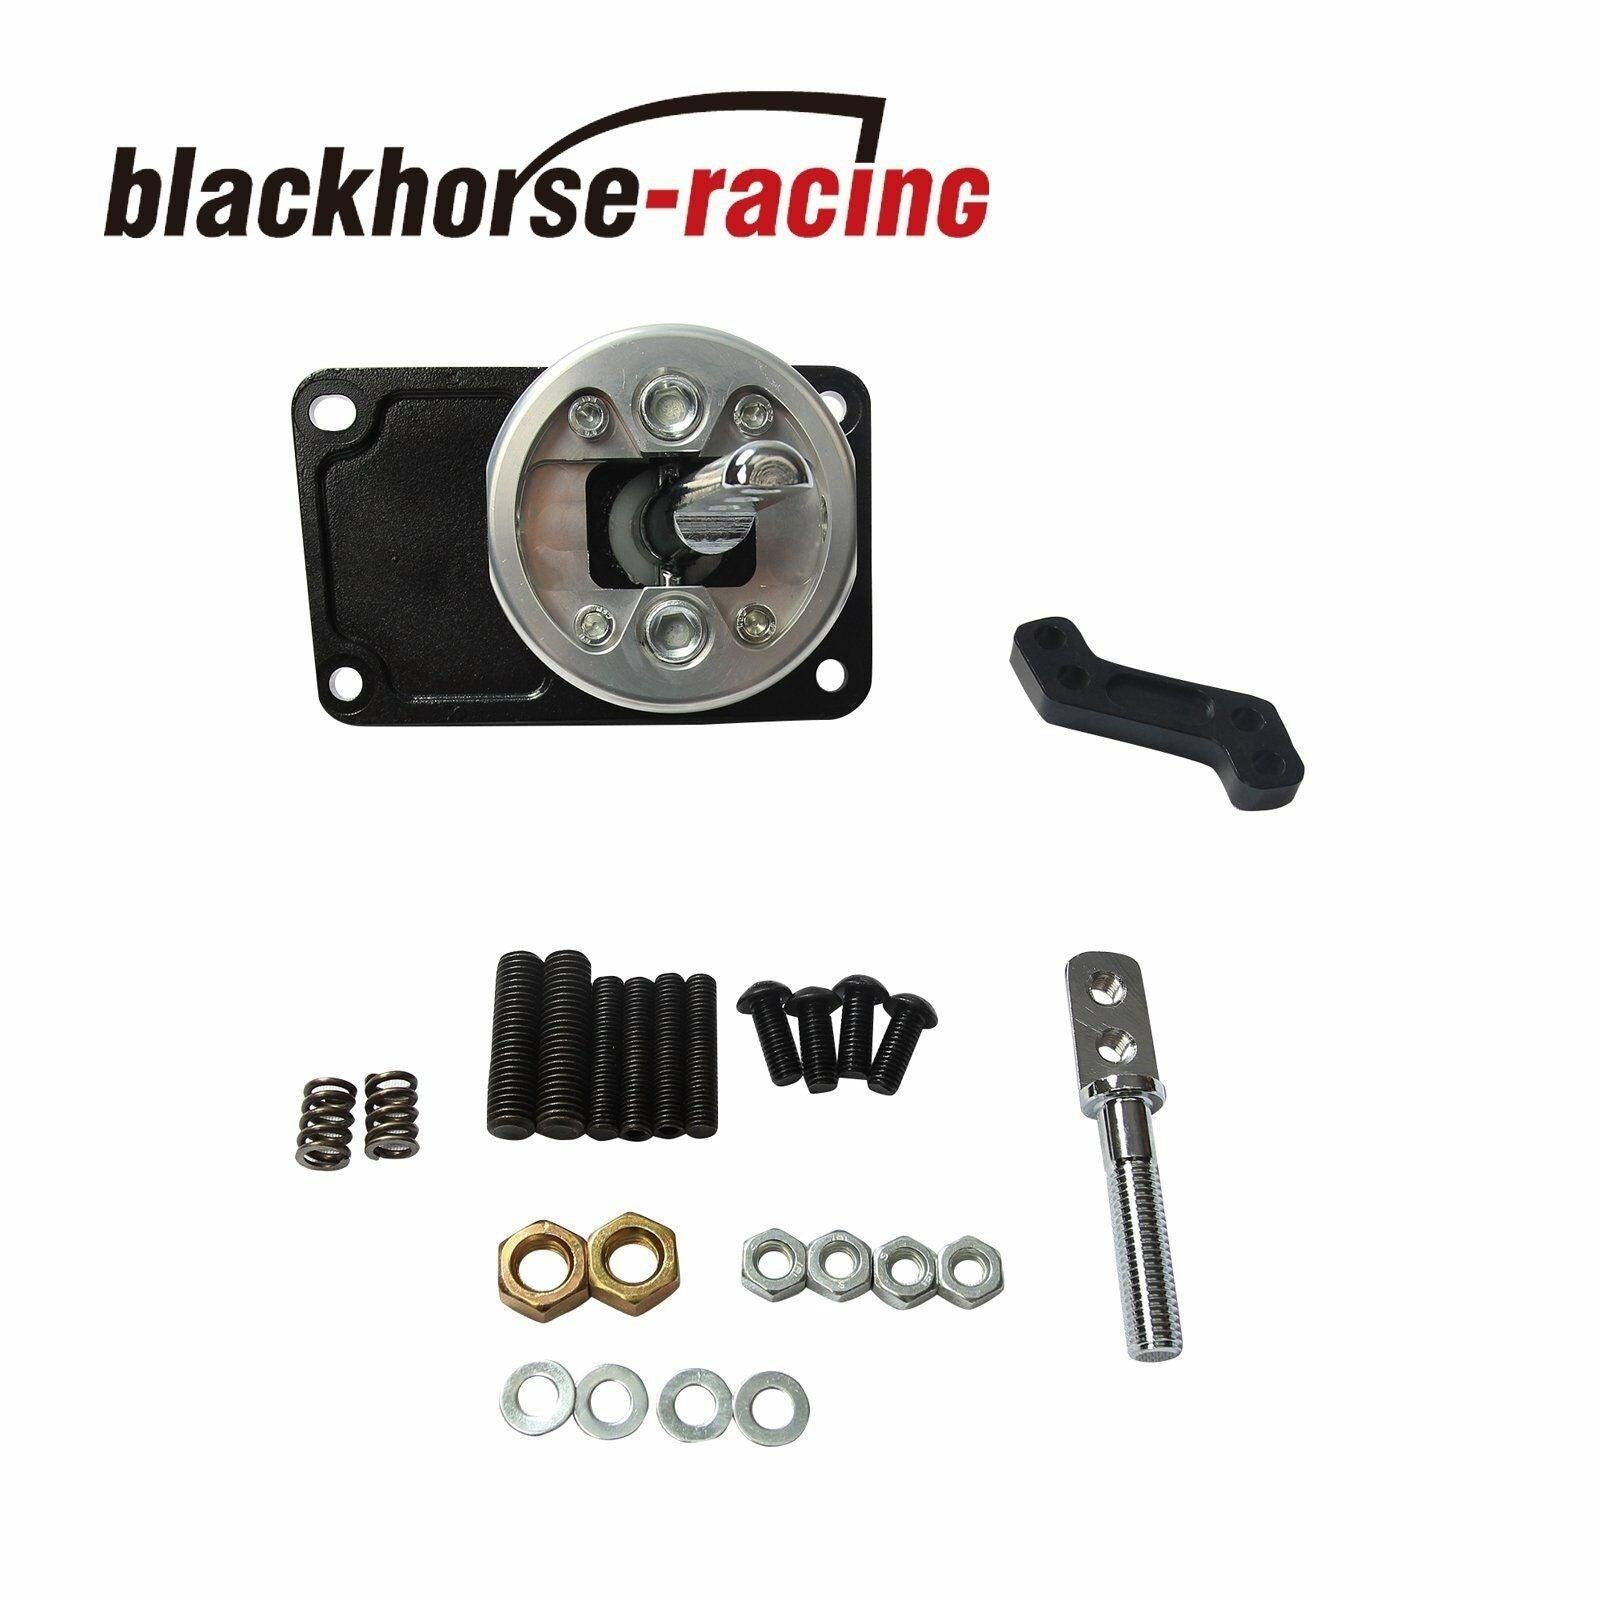 BLACK RACING SHORT THROW QUICK SHIFTER FOR 83-04 FORD MUSTANG/THUNDERBIRD T5/T45